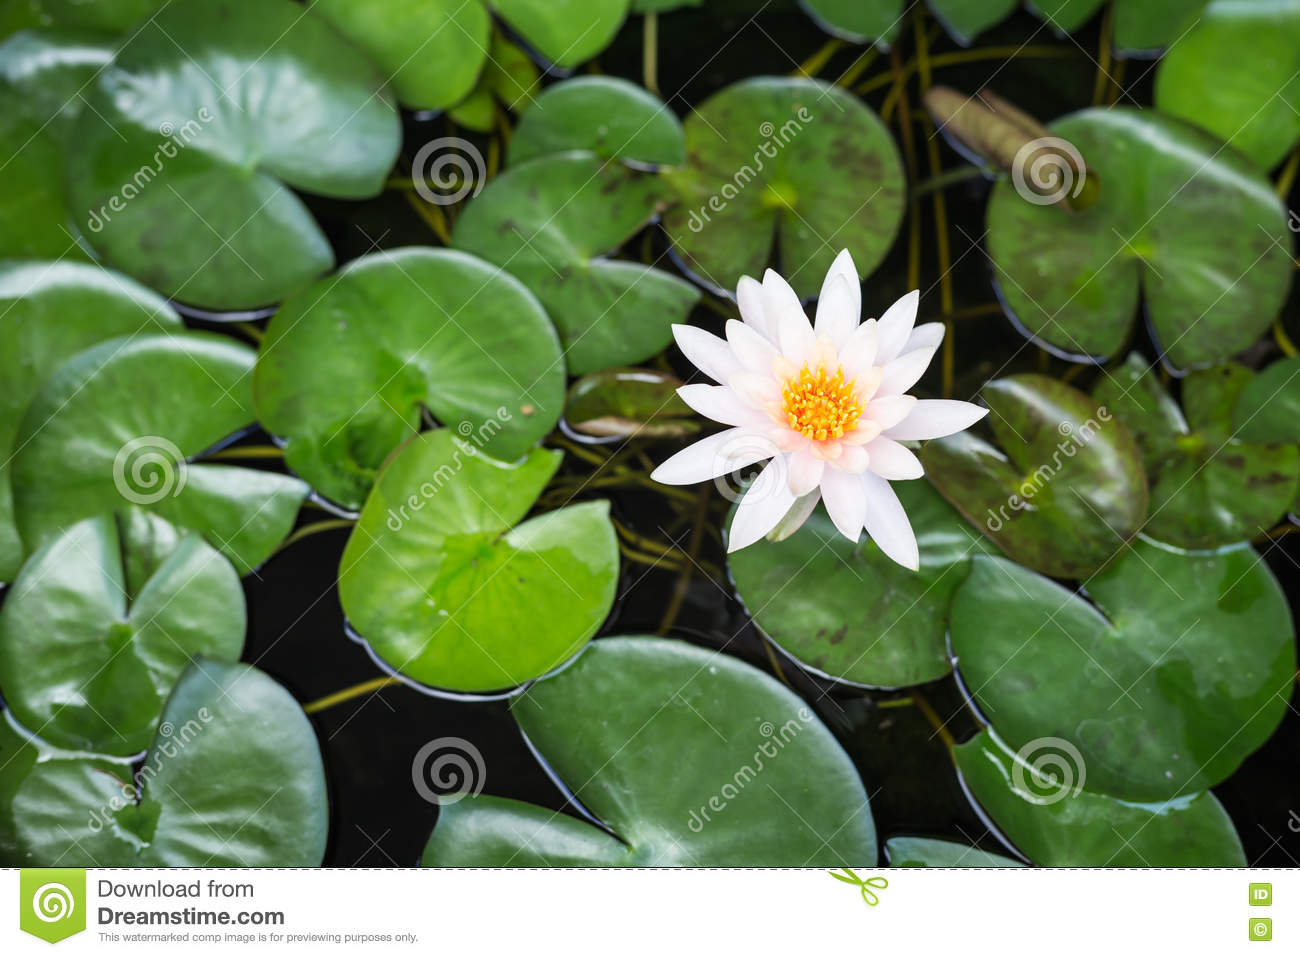 White lotus with green leaf in water pond top view stock photo white lotus with green leaf in water pond top view izmirmasajfo